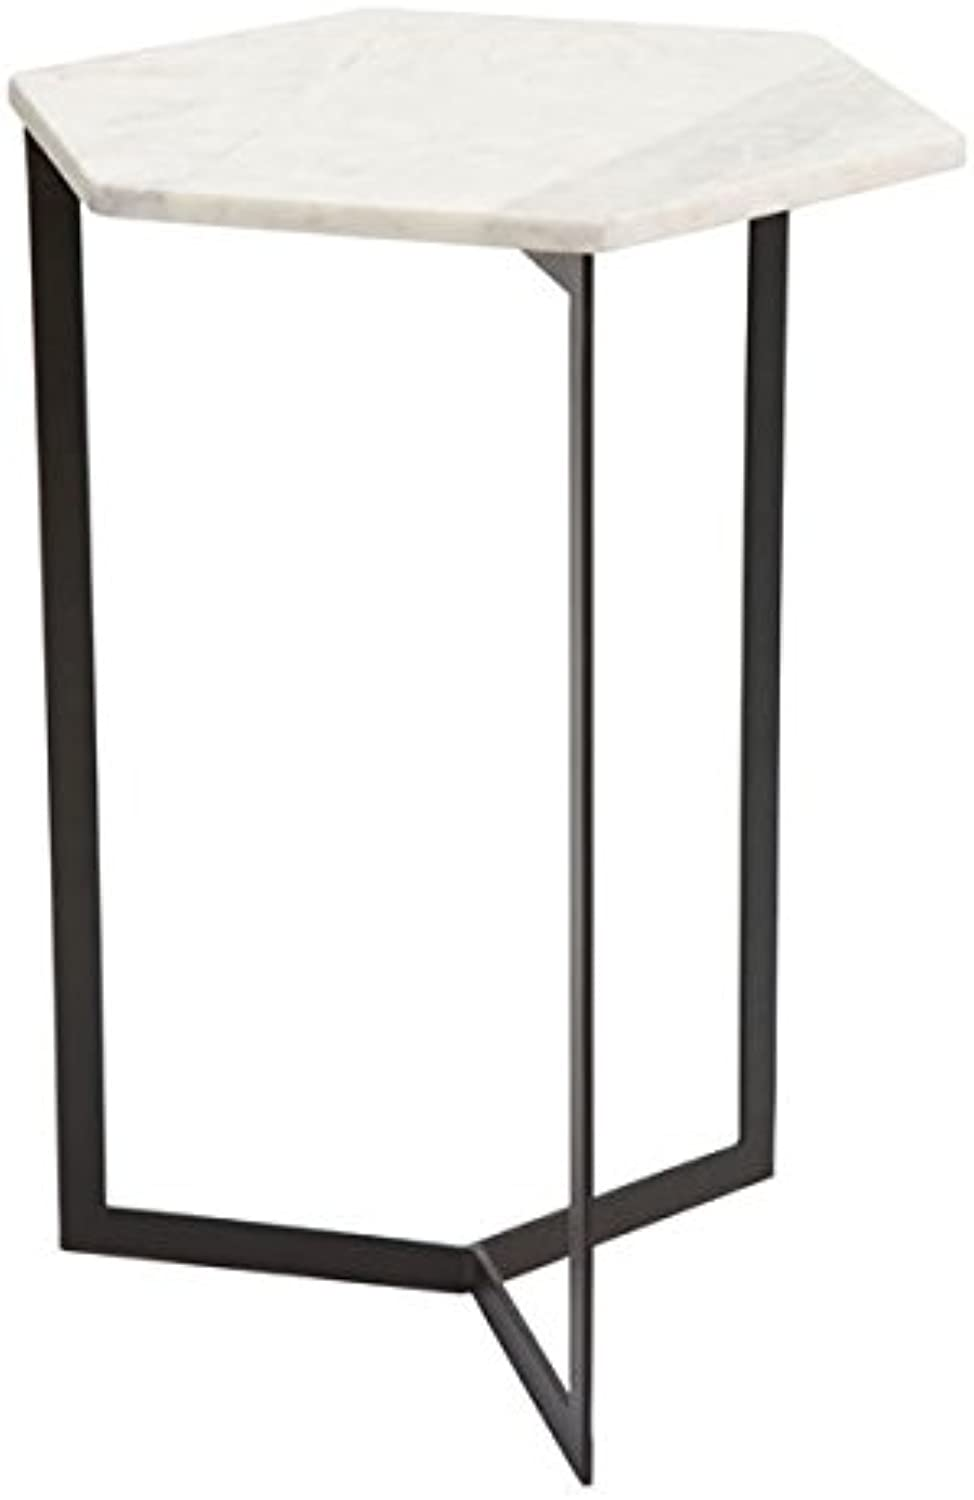 Zuo Ryes Accent Table, Black & White